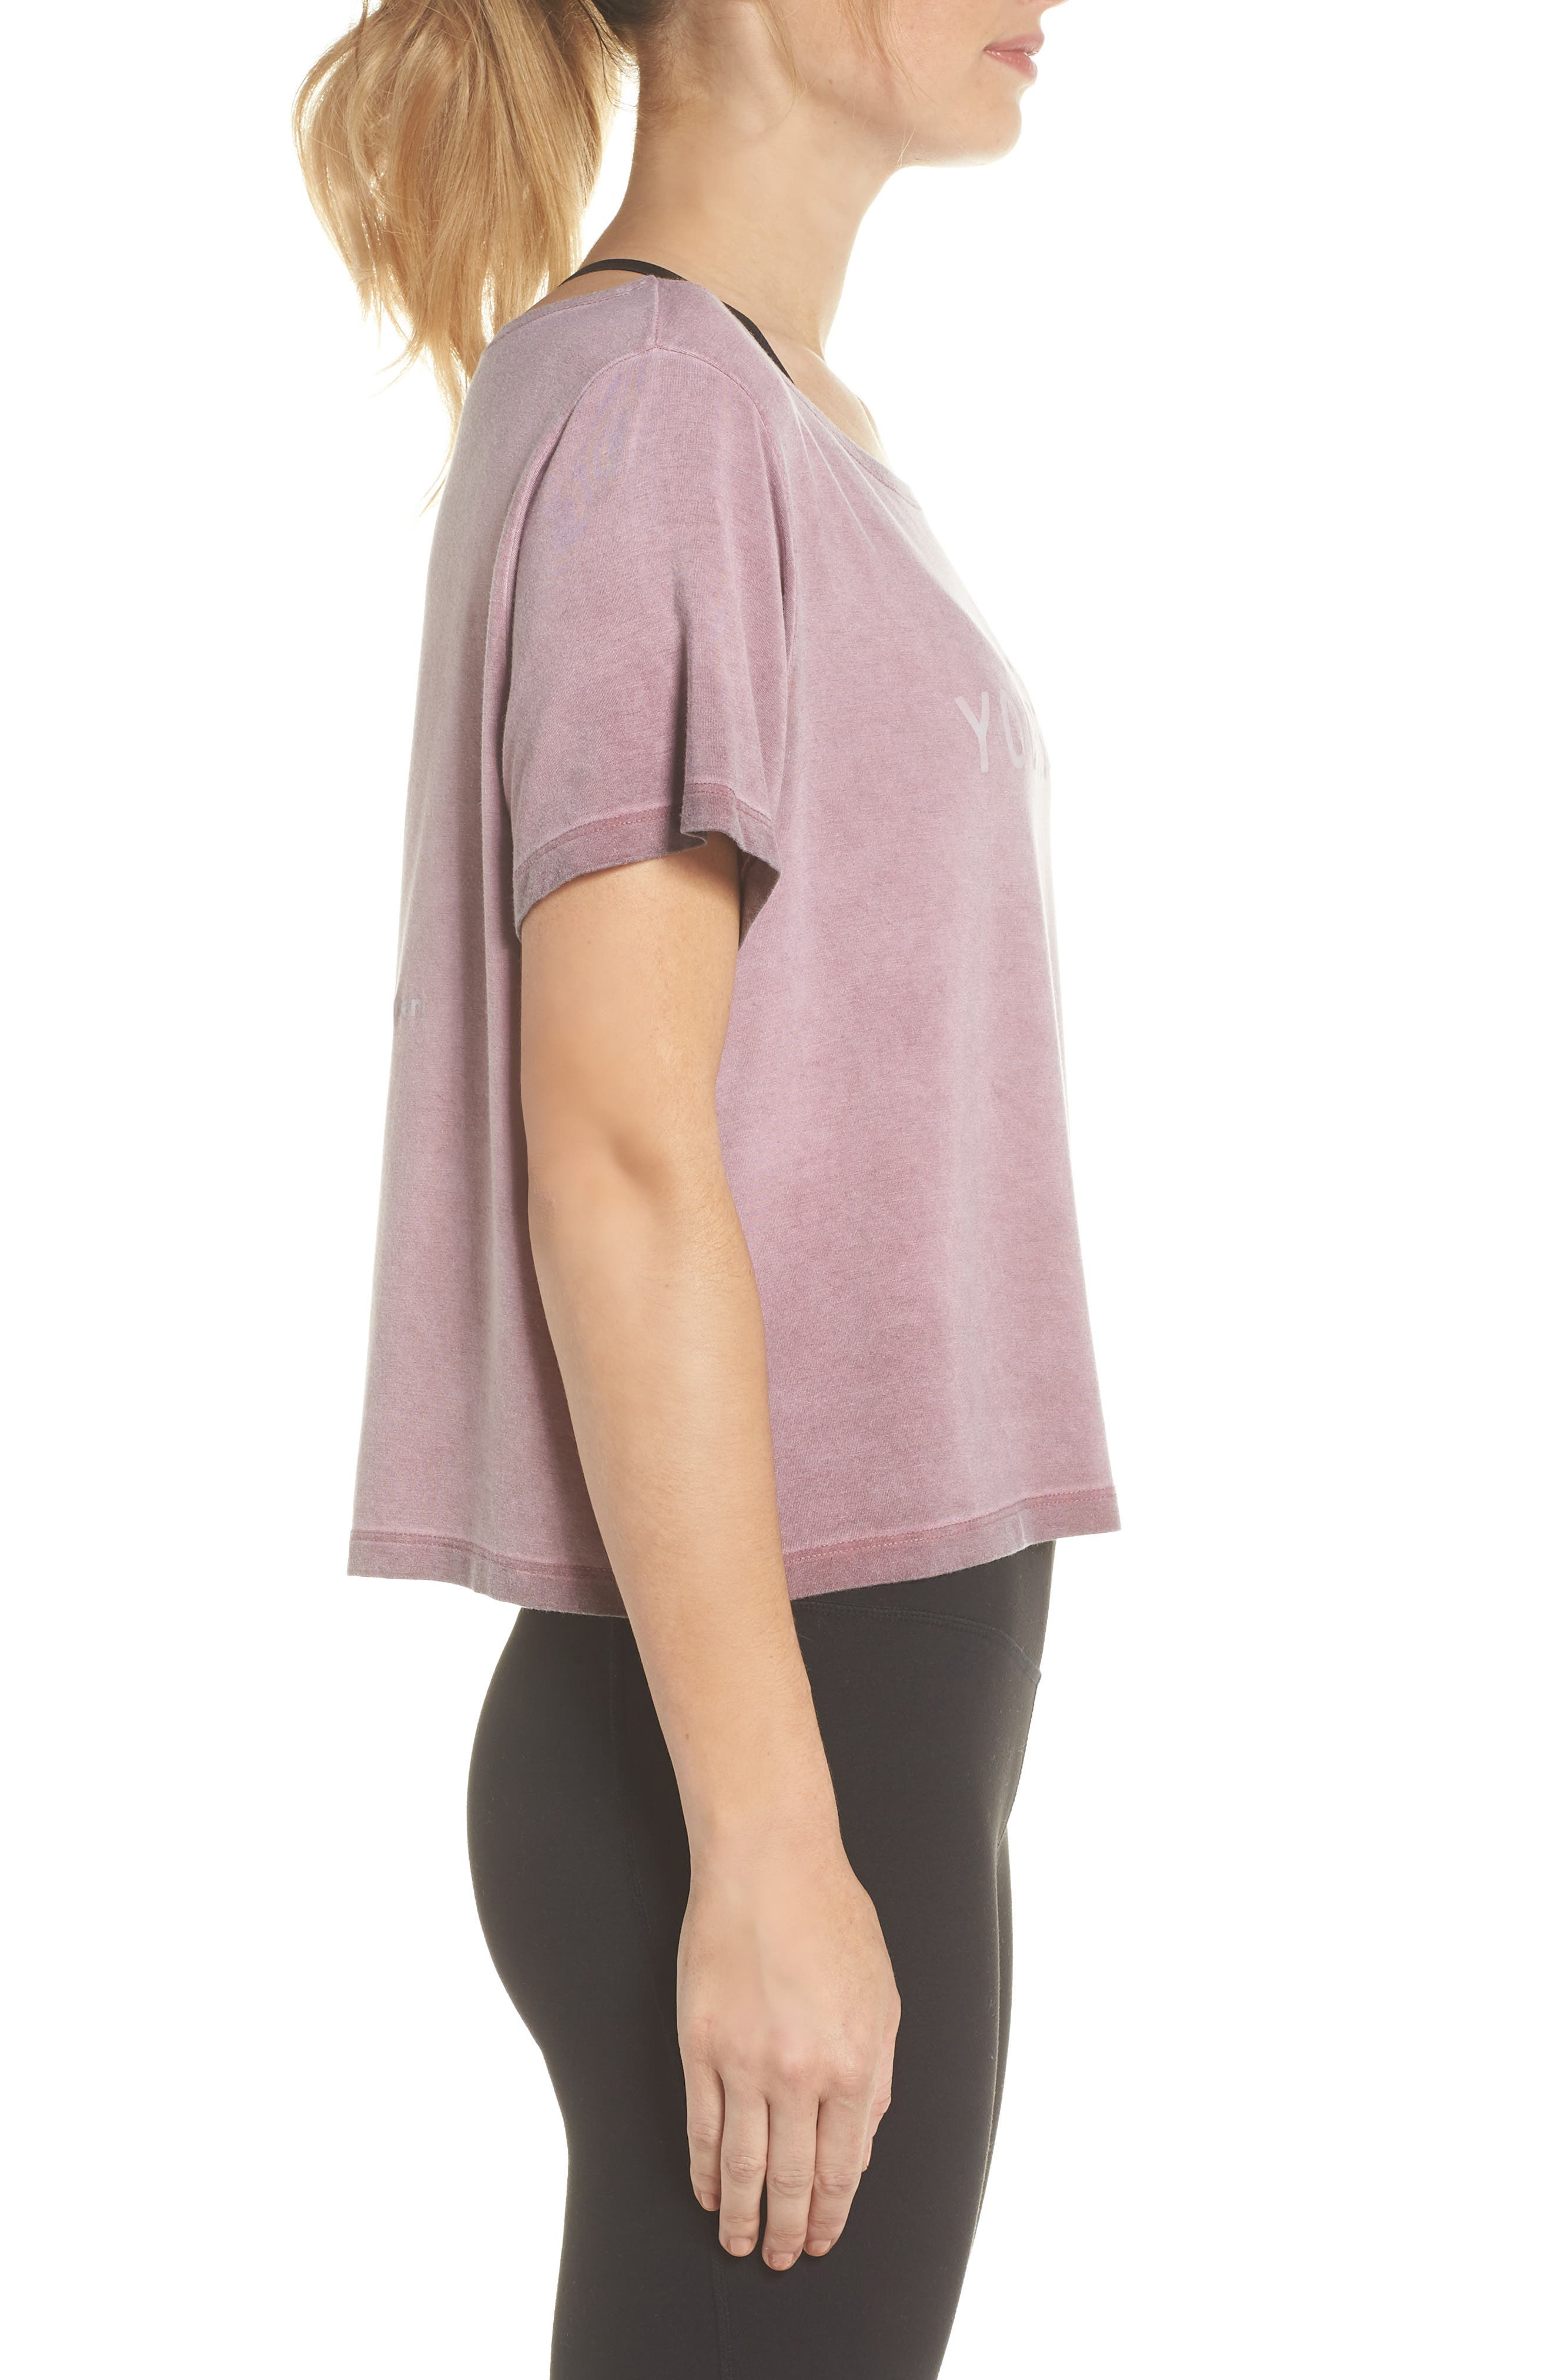 Payton Love Yourself Crop Tee,                             Alternate thumbnail 3, color,                             650